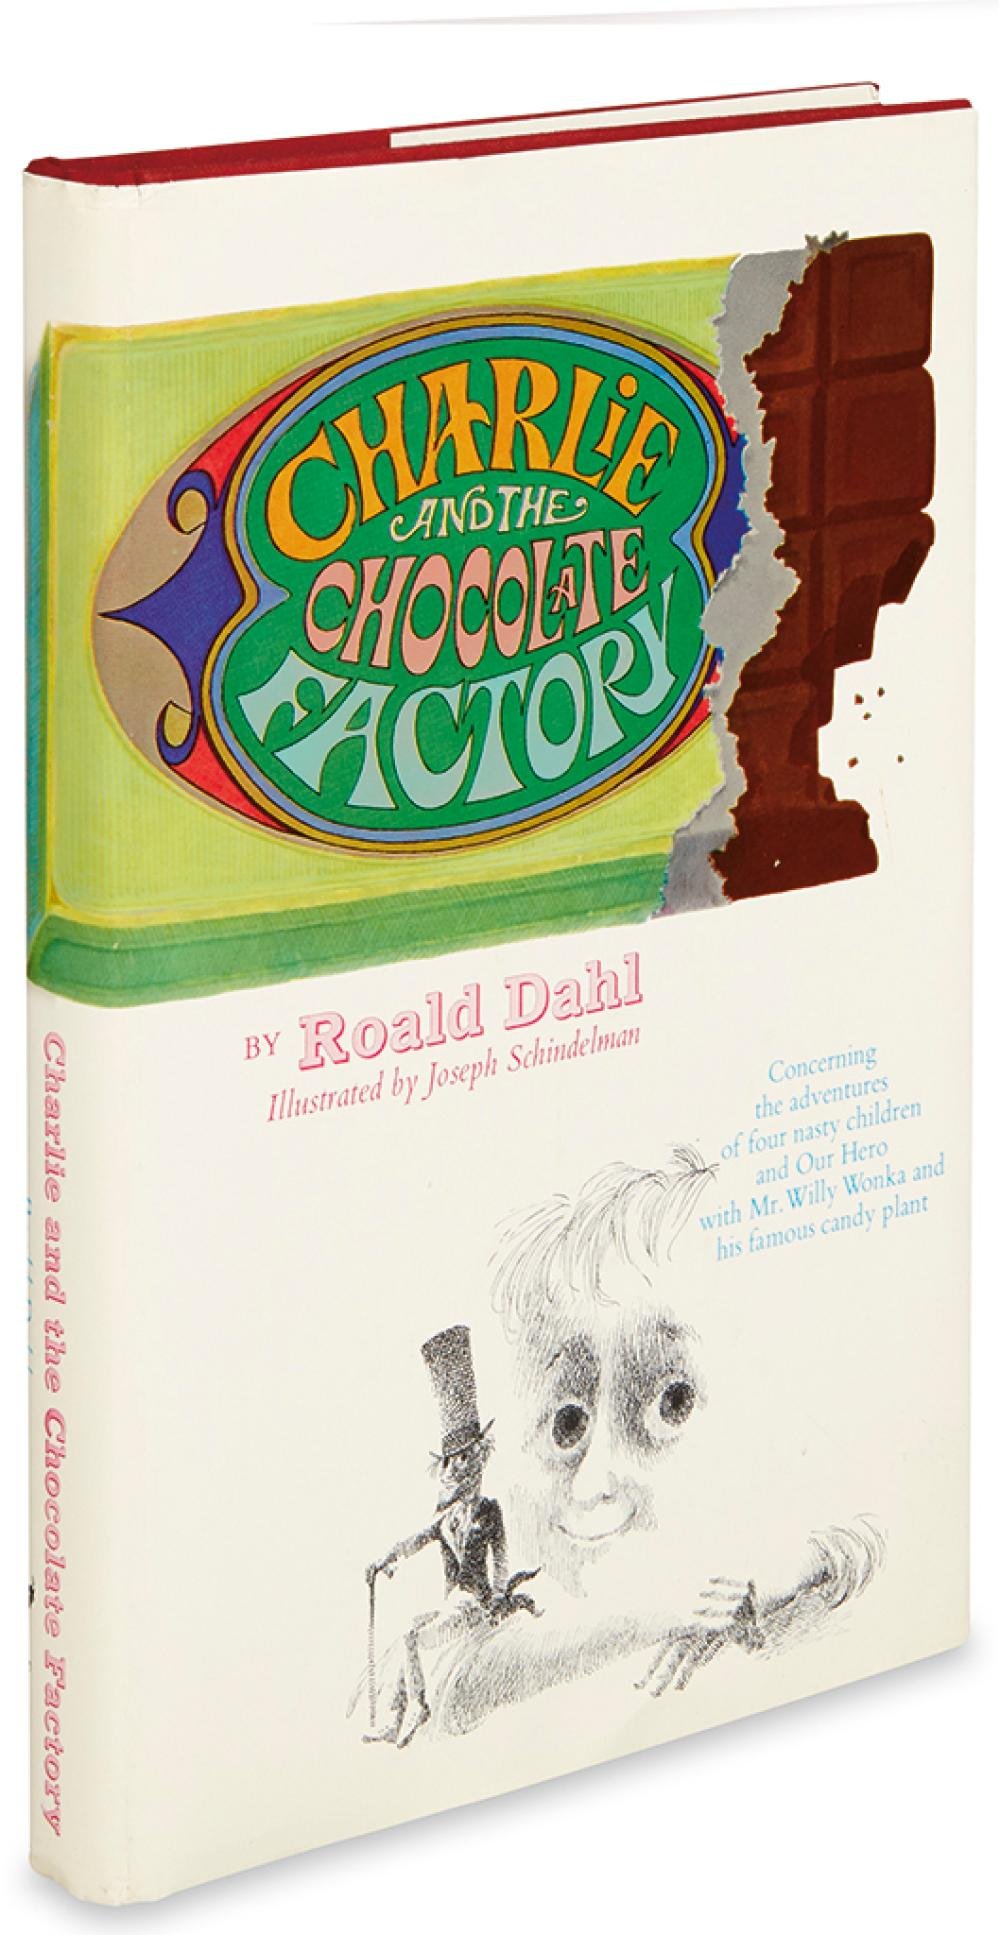 (CHILDREN'S LITERATURE.) DAHL, ROALD. Charlie and the Chocolate Factory.